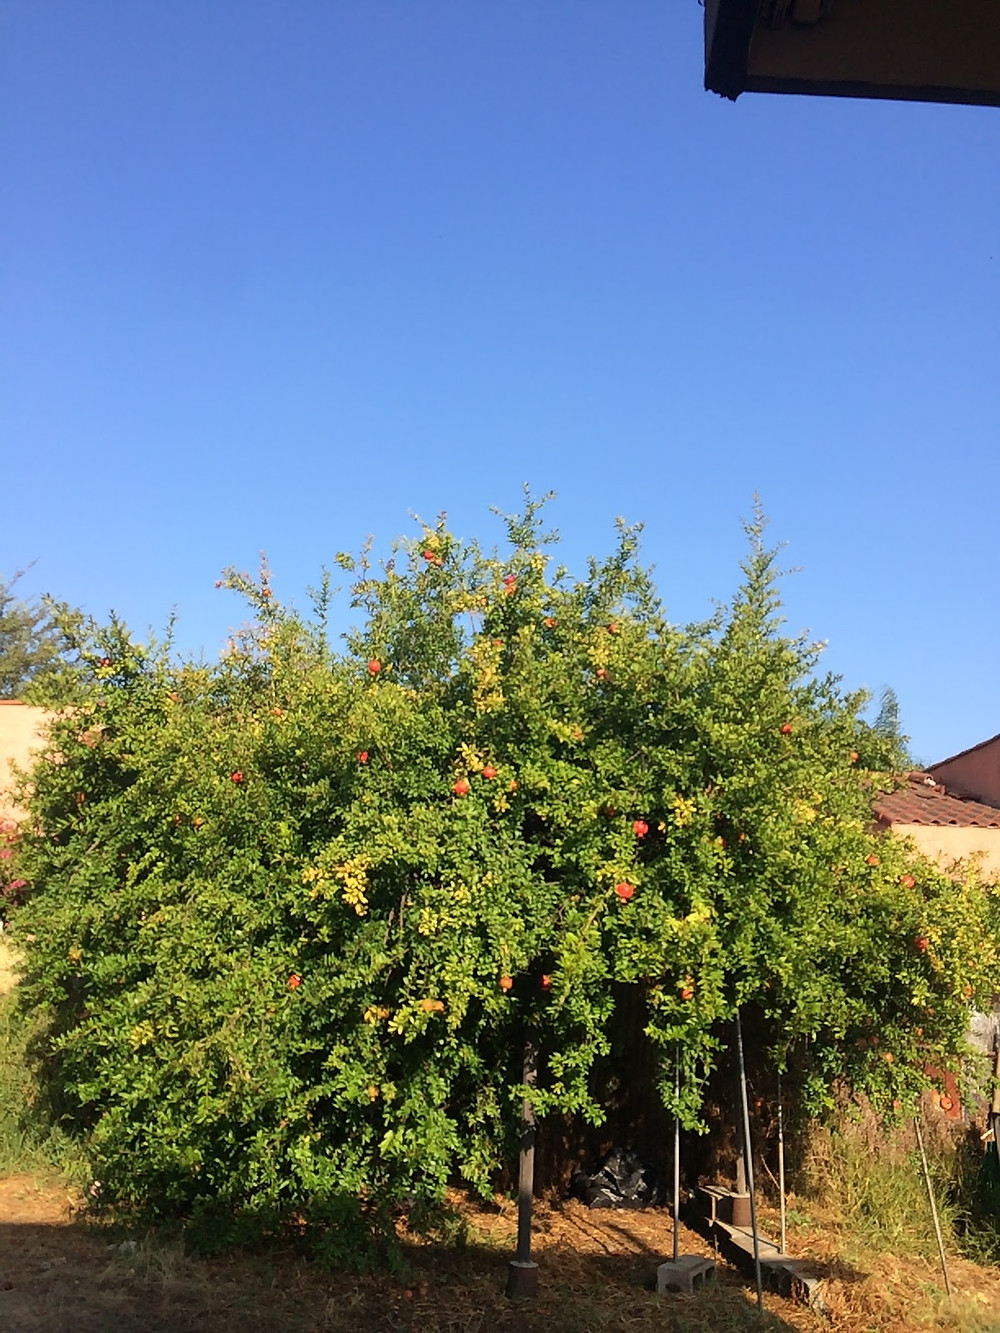 The warm, dry climate of Southern California is perfect for growing pomegranate trees.